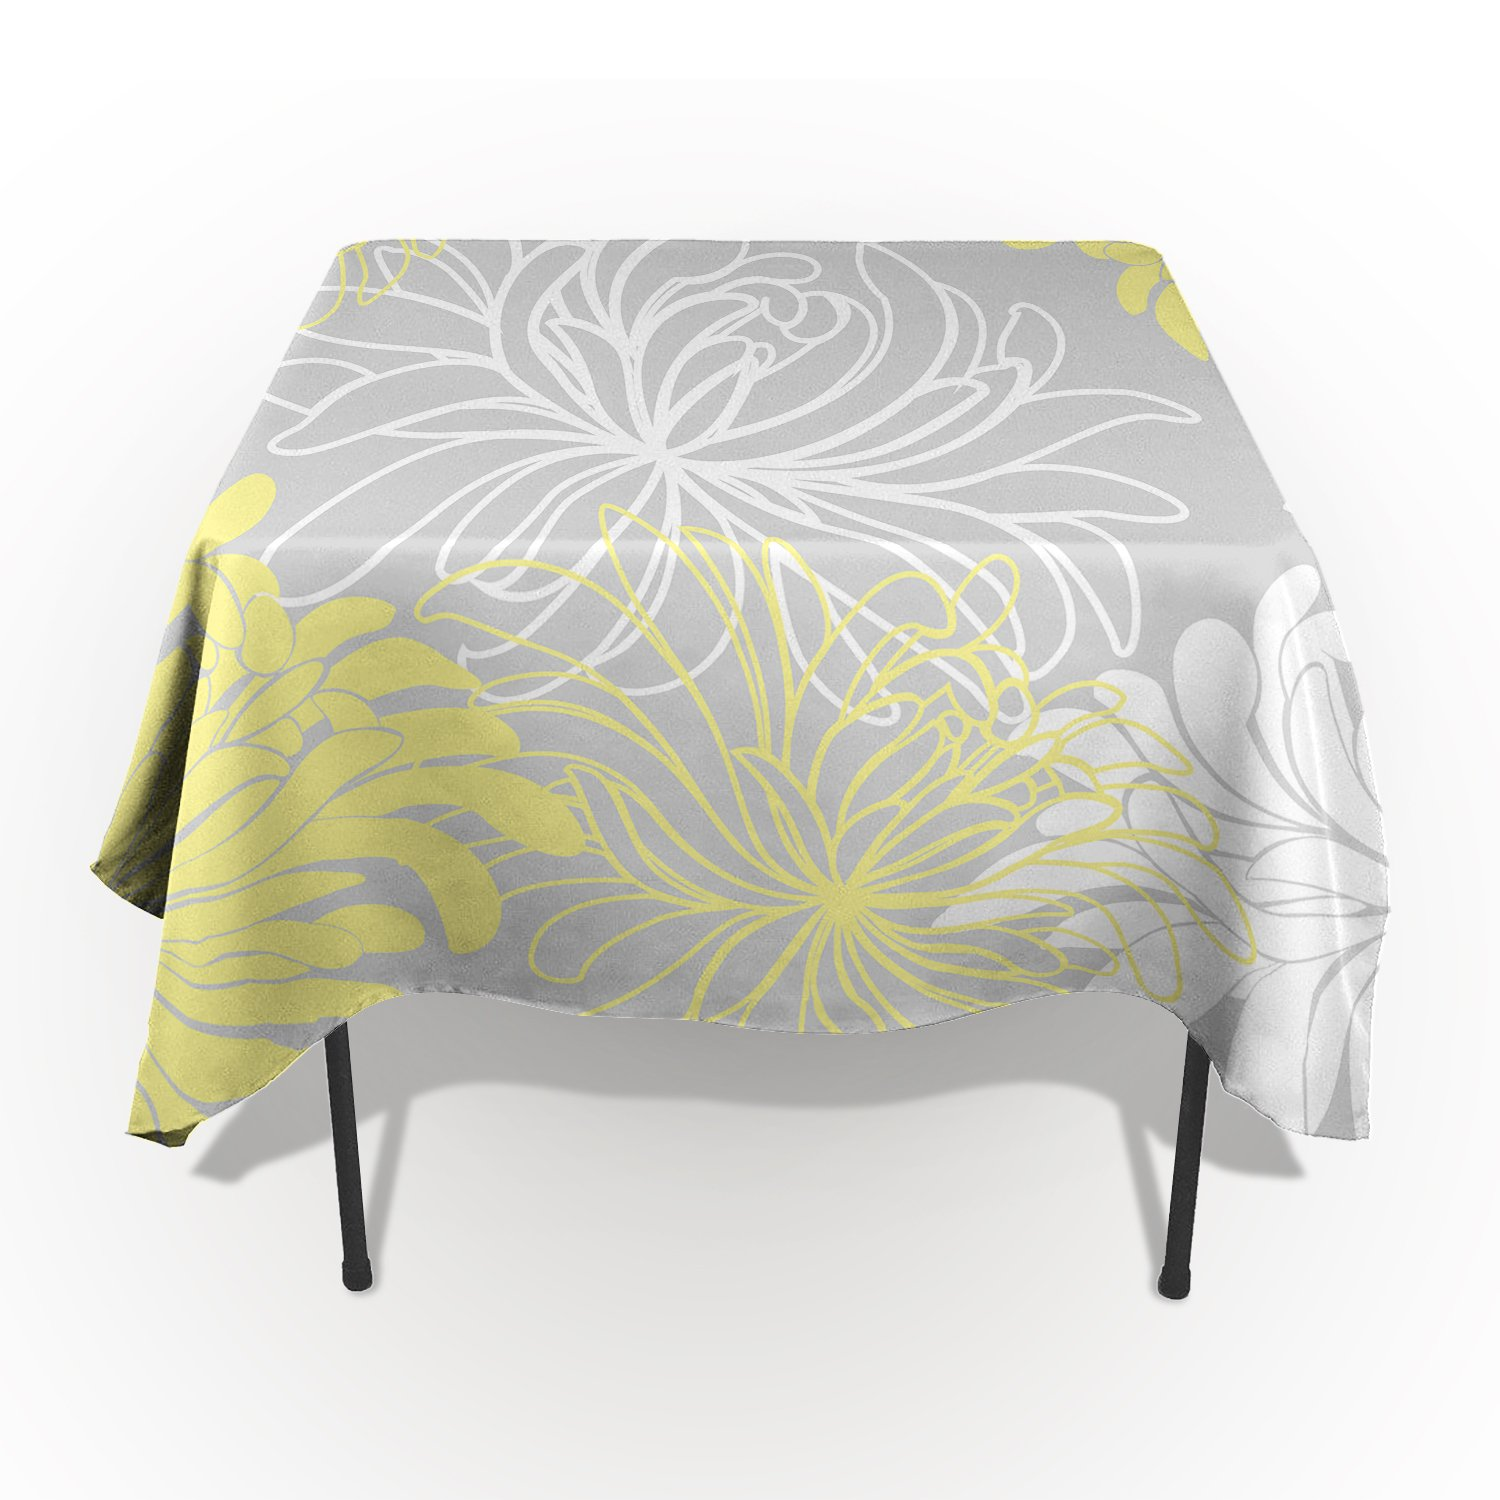 Home Decor Tablecloth Japanese Dahlia Floral Rectangular Table Cover for Dining Room Kitchen Outdoor Picnic 60x120 Inch White Gray Yellow